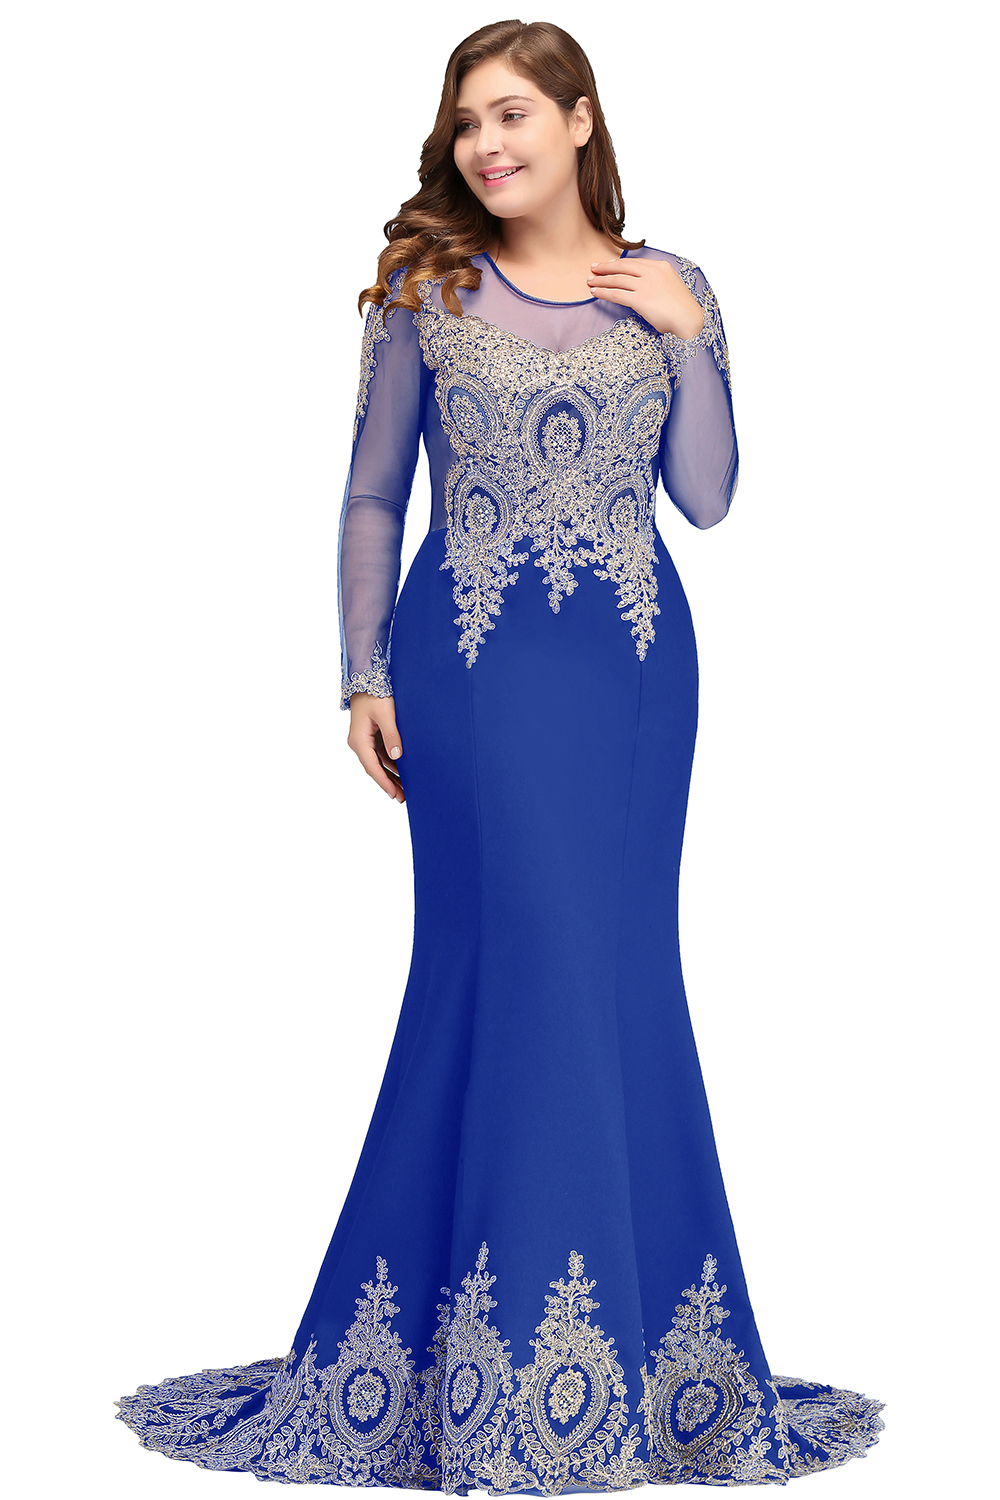 Elegant Mother Of The Bride Dress Lace Satin 2019 Mermaid Long Sleeve Applique Black Long Formal Party Evening Gowns For Wedding